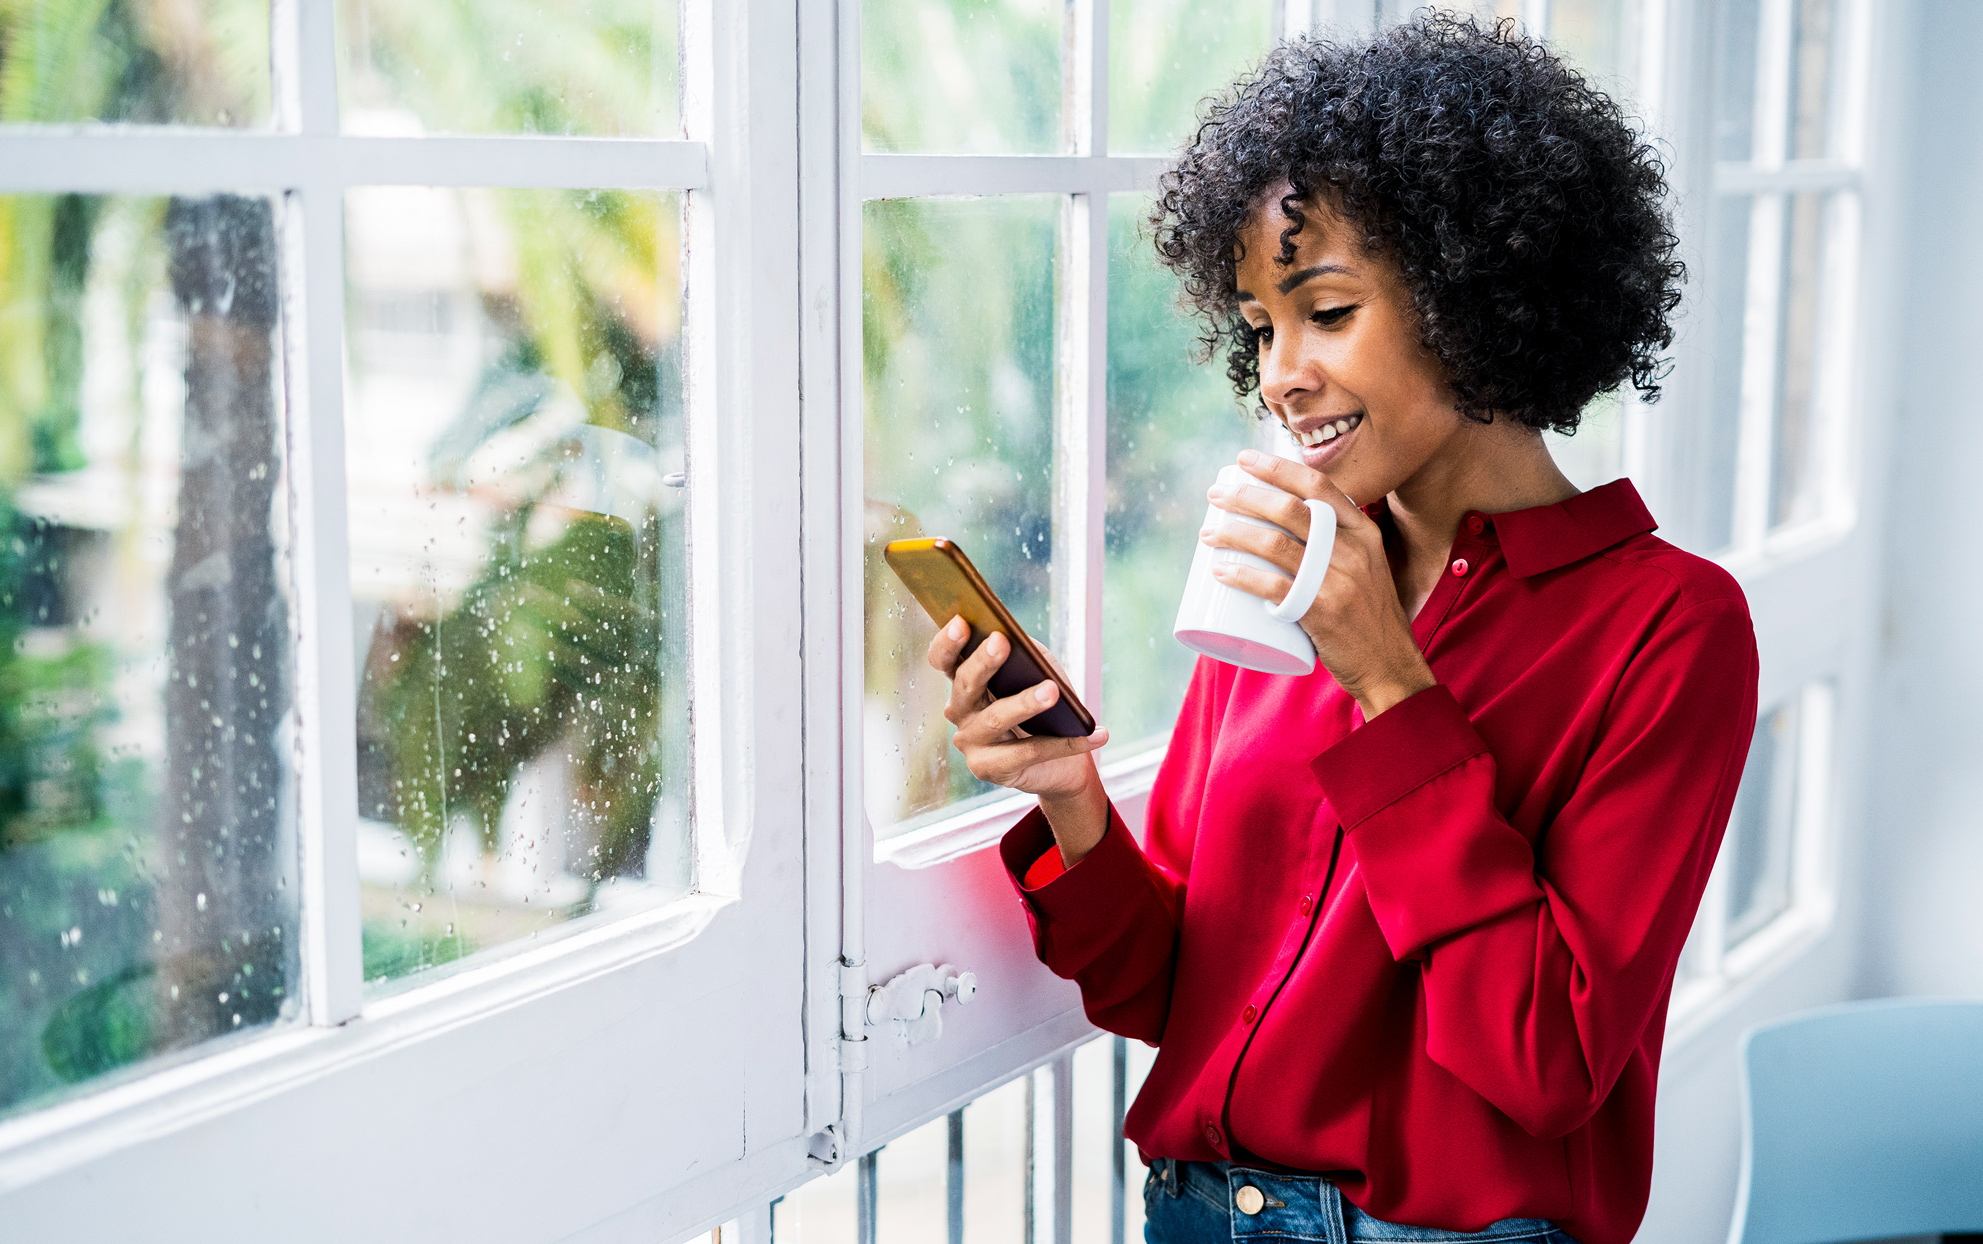 Ethnic woman standing near a window drinking from a mug and looking at a cell phone